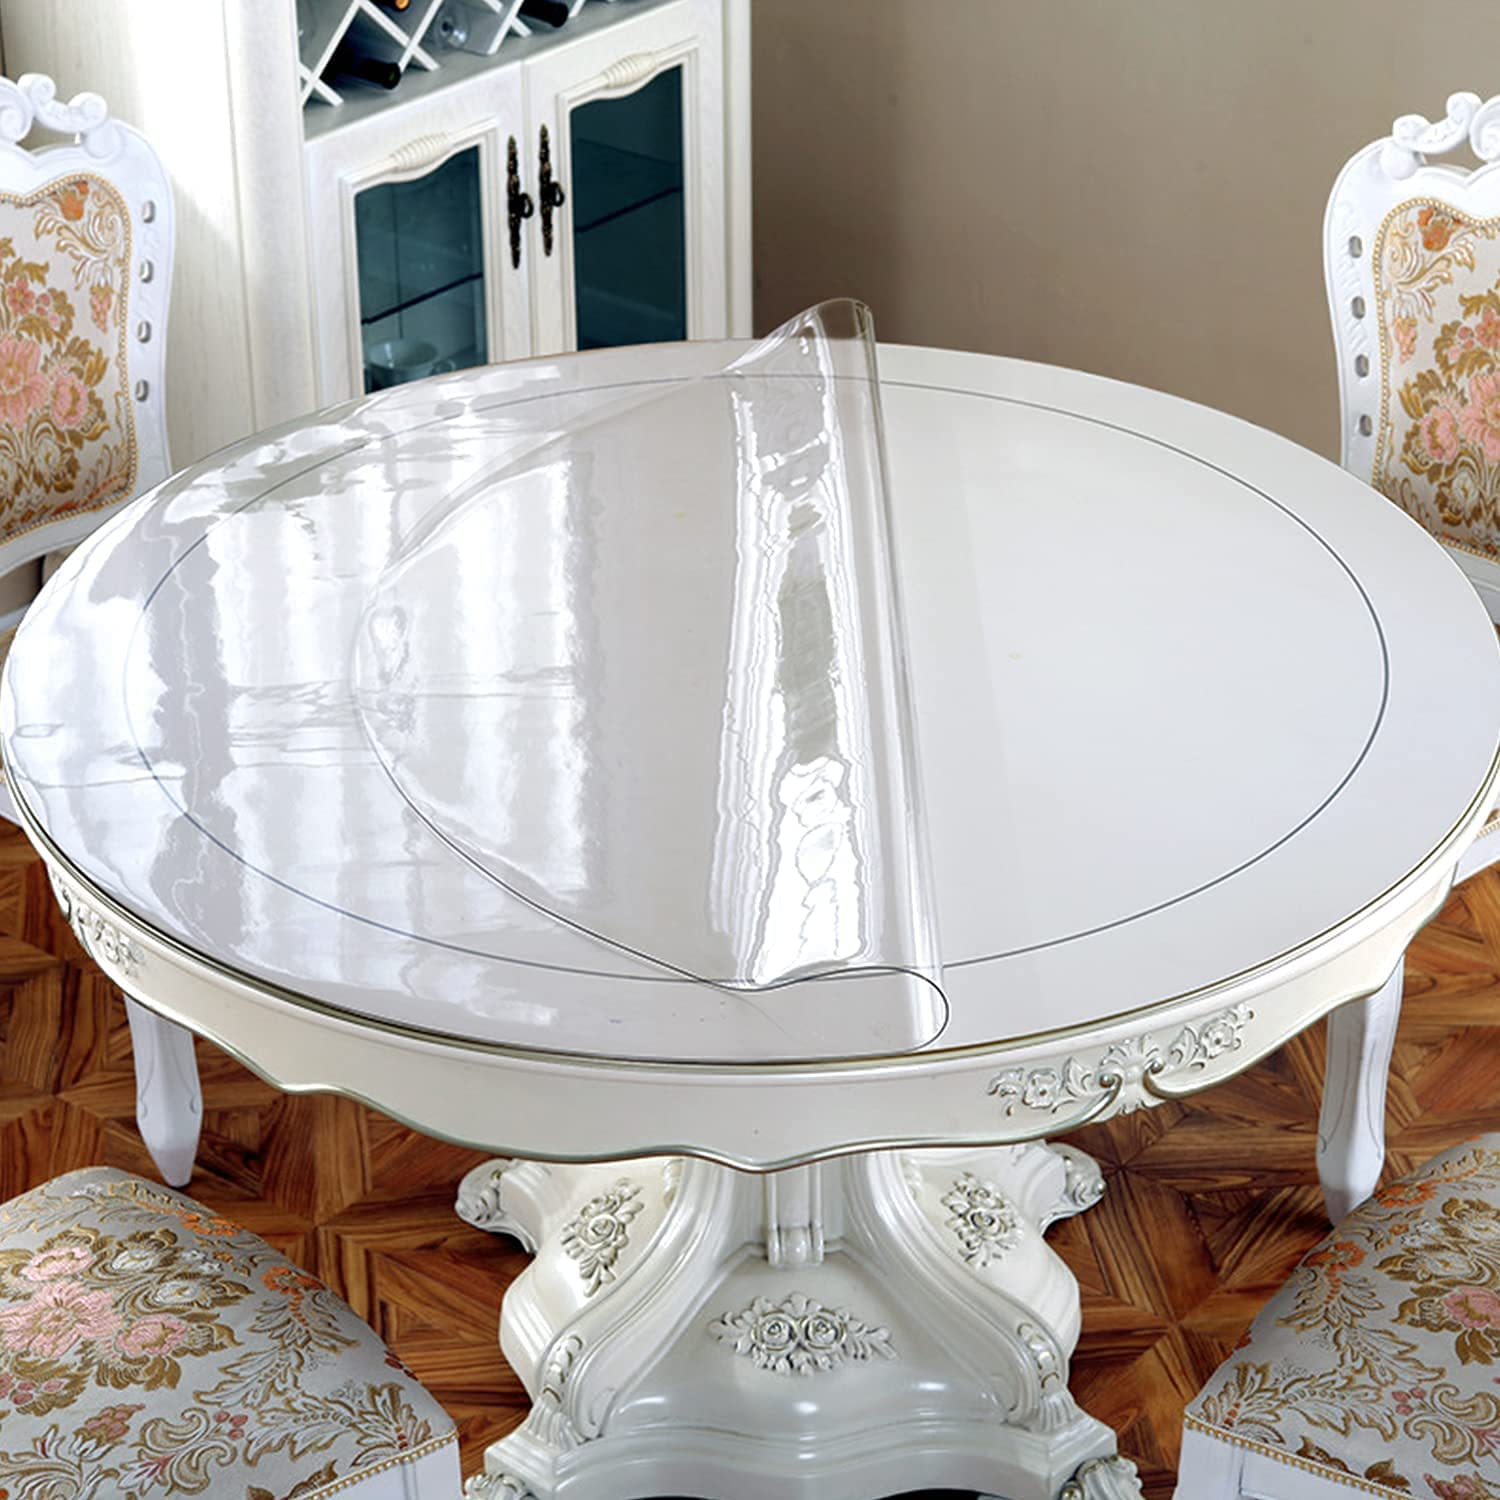 New Version 1 5mm Thick 60 Inches, 60 Inch Round Tablecloth Disposable